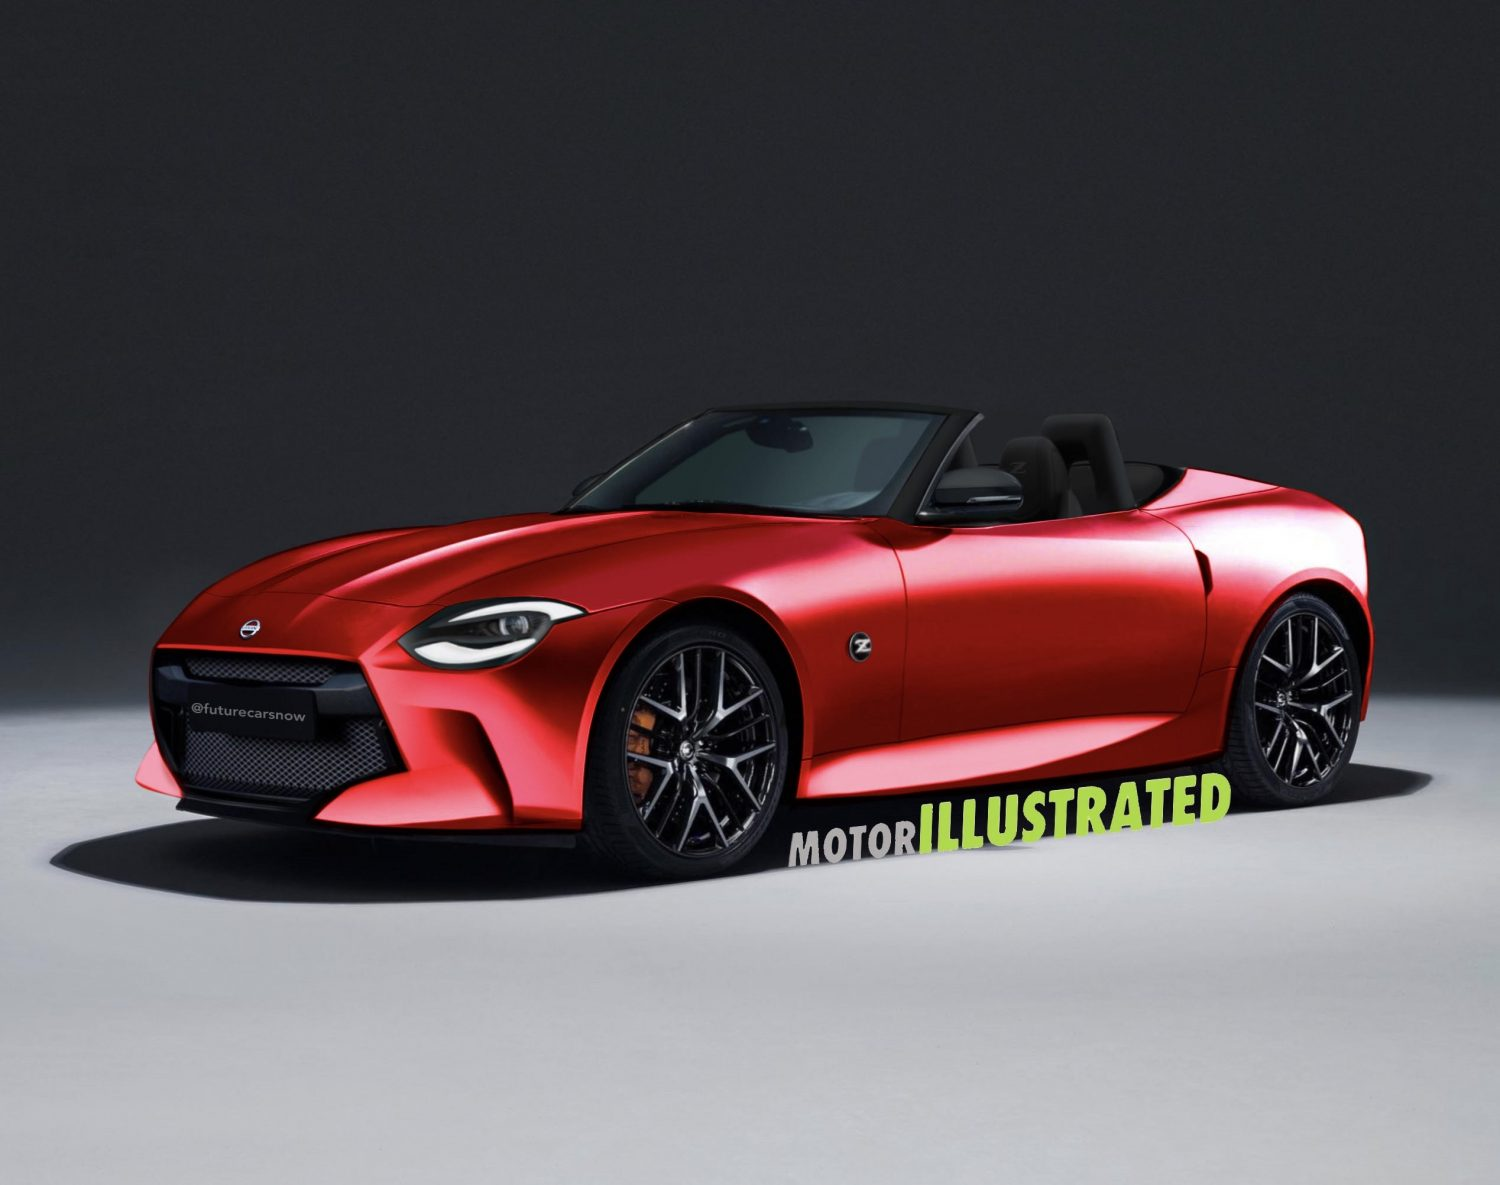 5 Nissan 5Z Roadster Rendered: The Next Step - Motor Illustrated